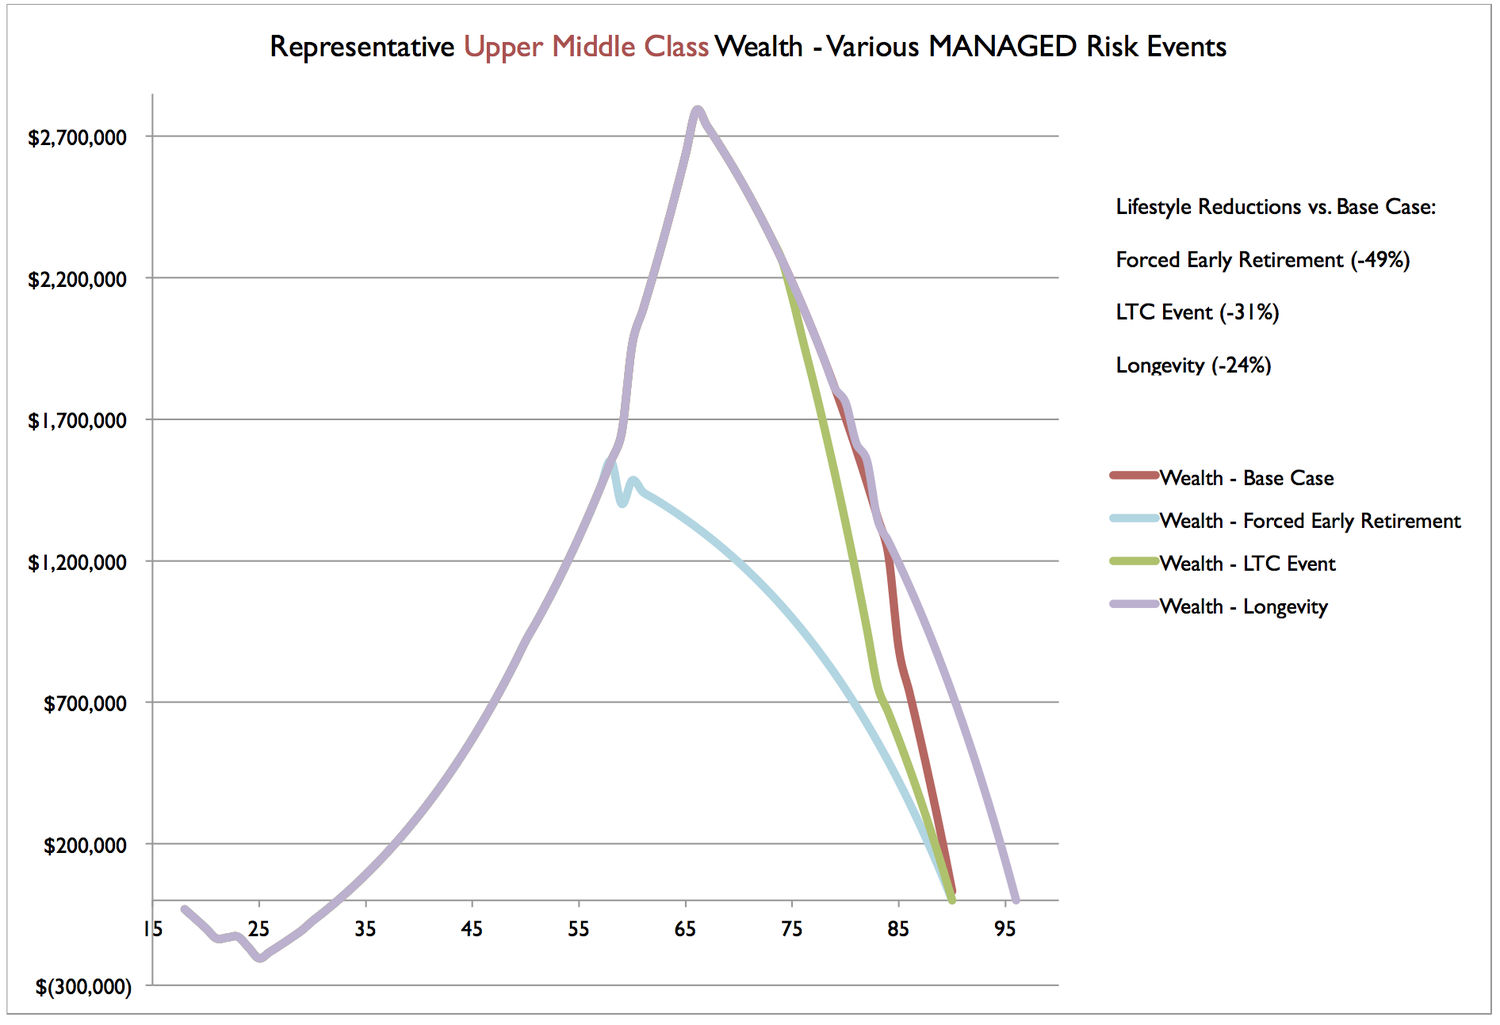 UMC Wealth Scenarios - Managed